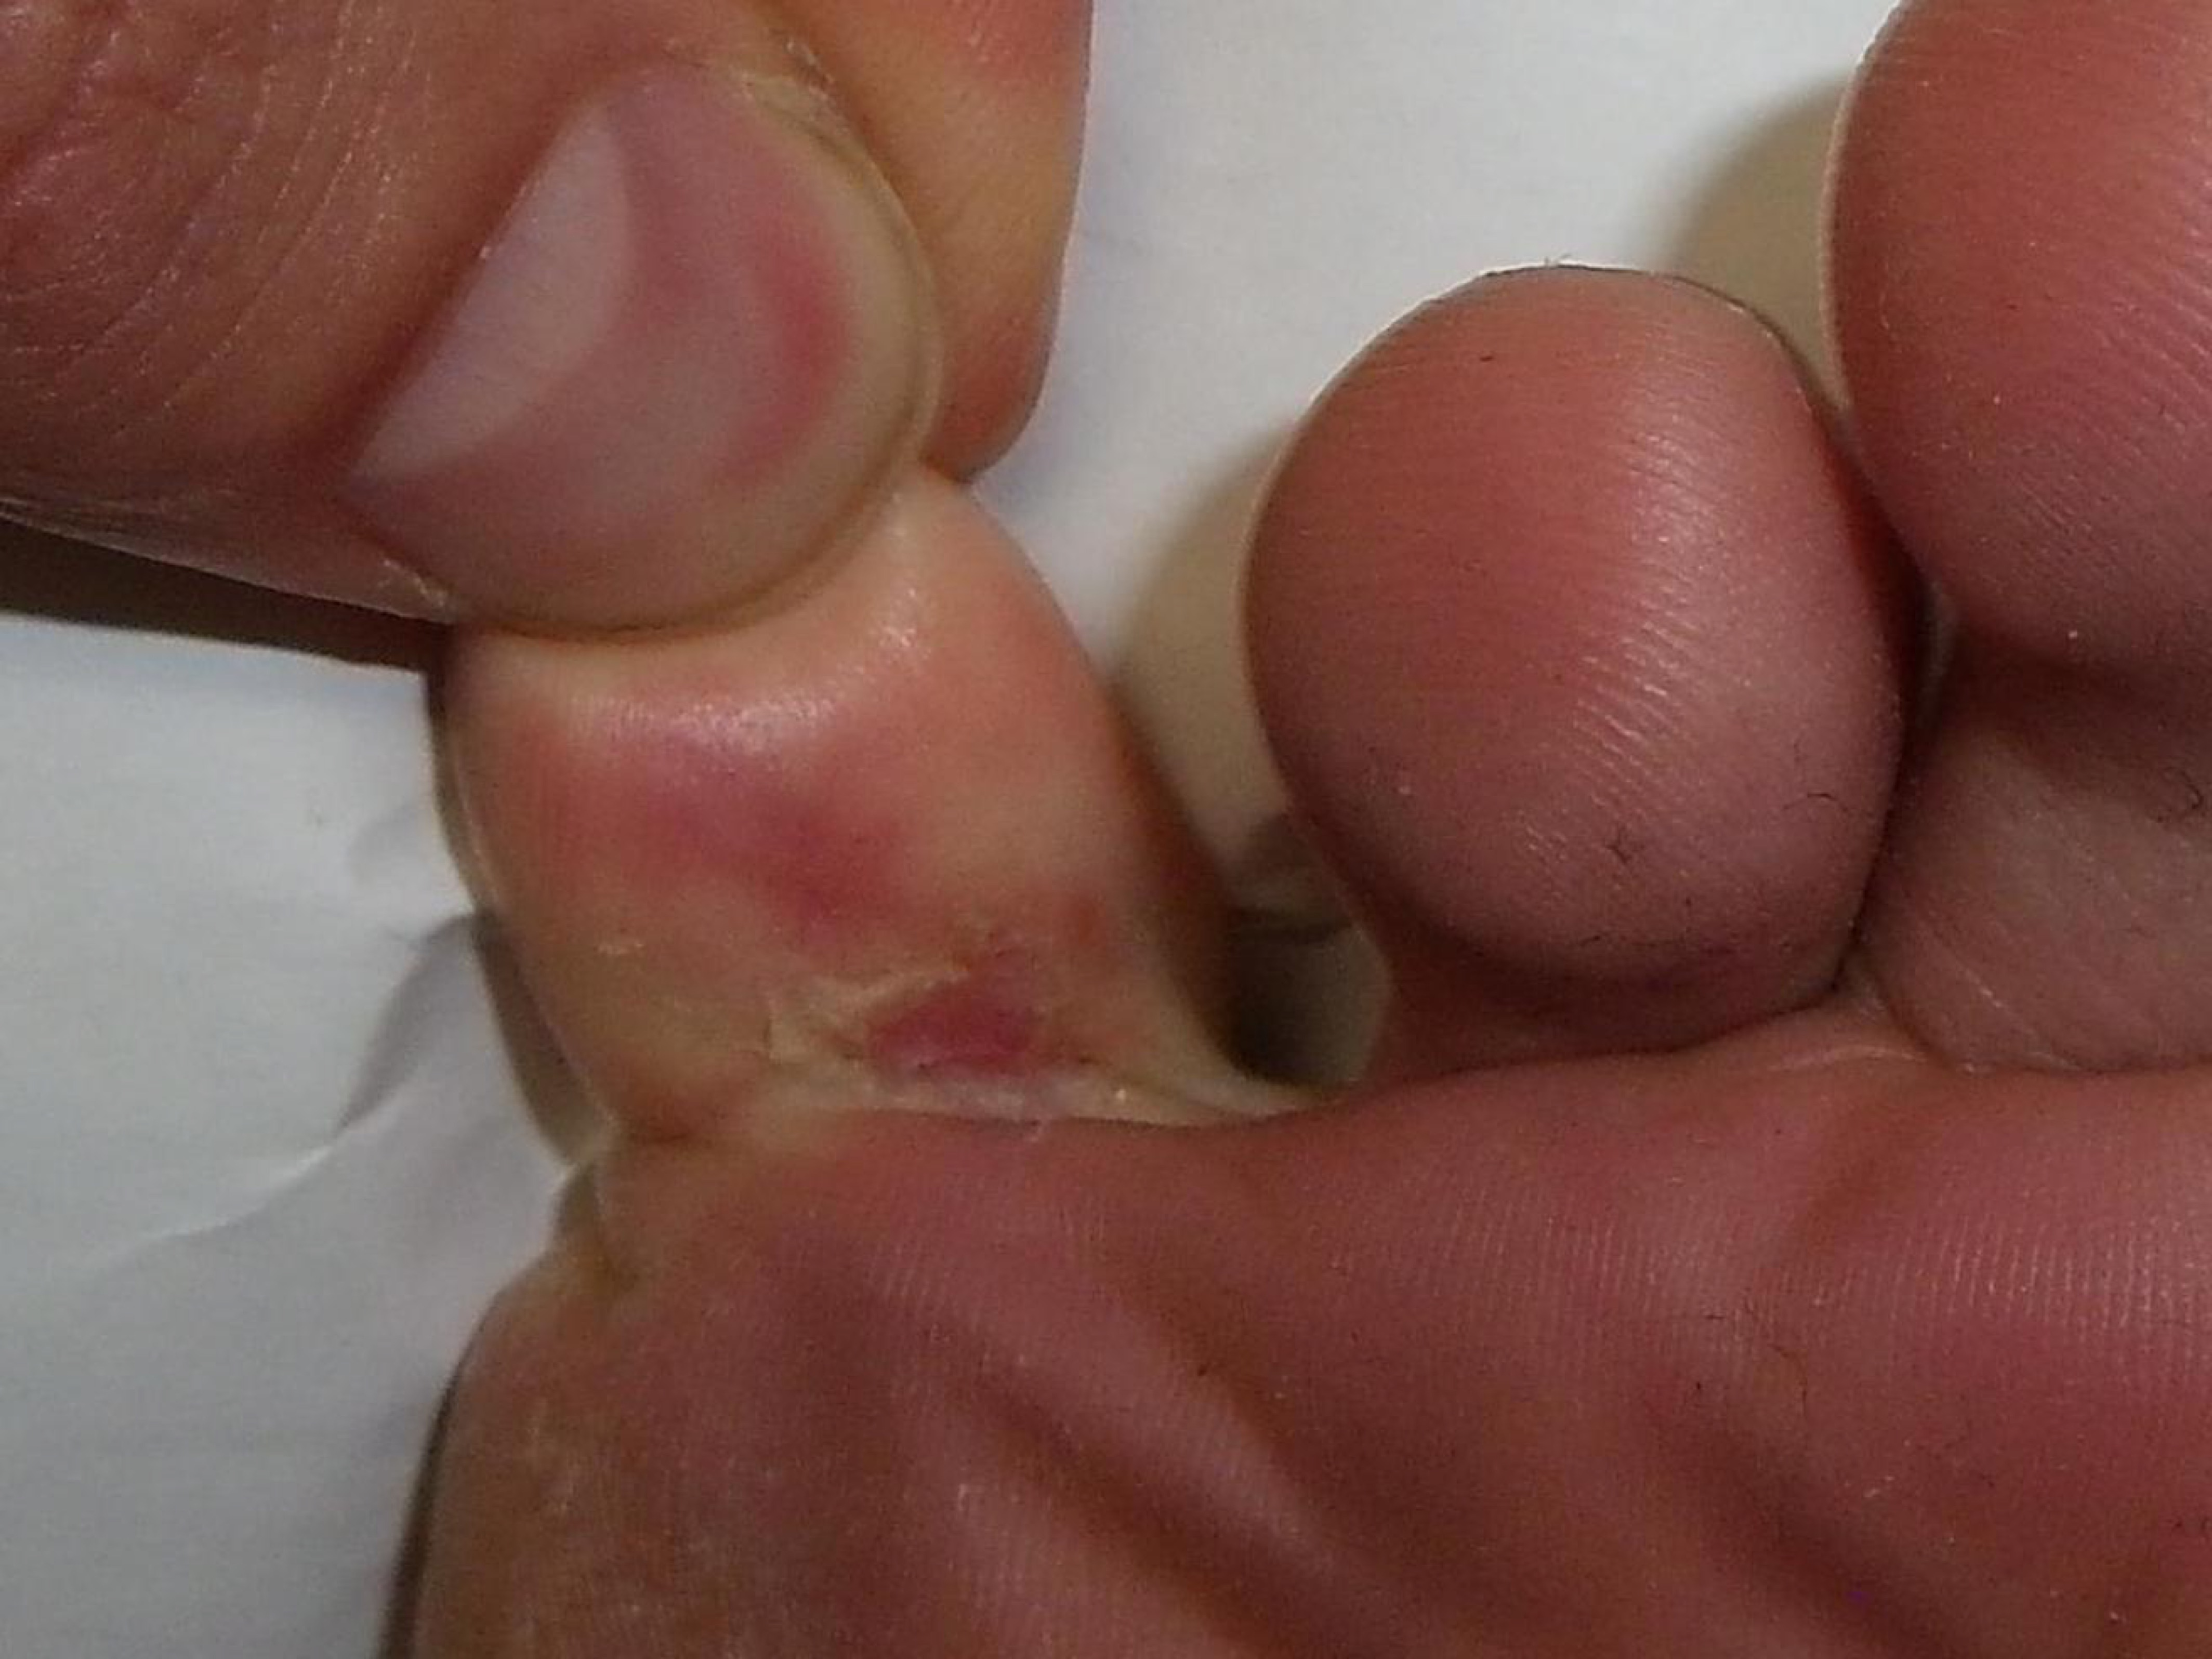 Athletes Foot Picture